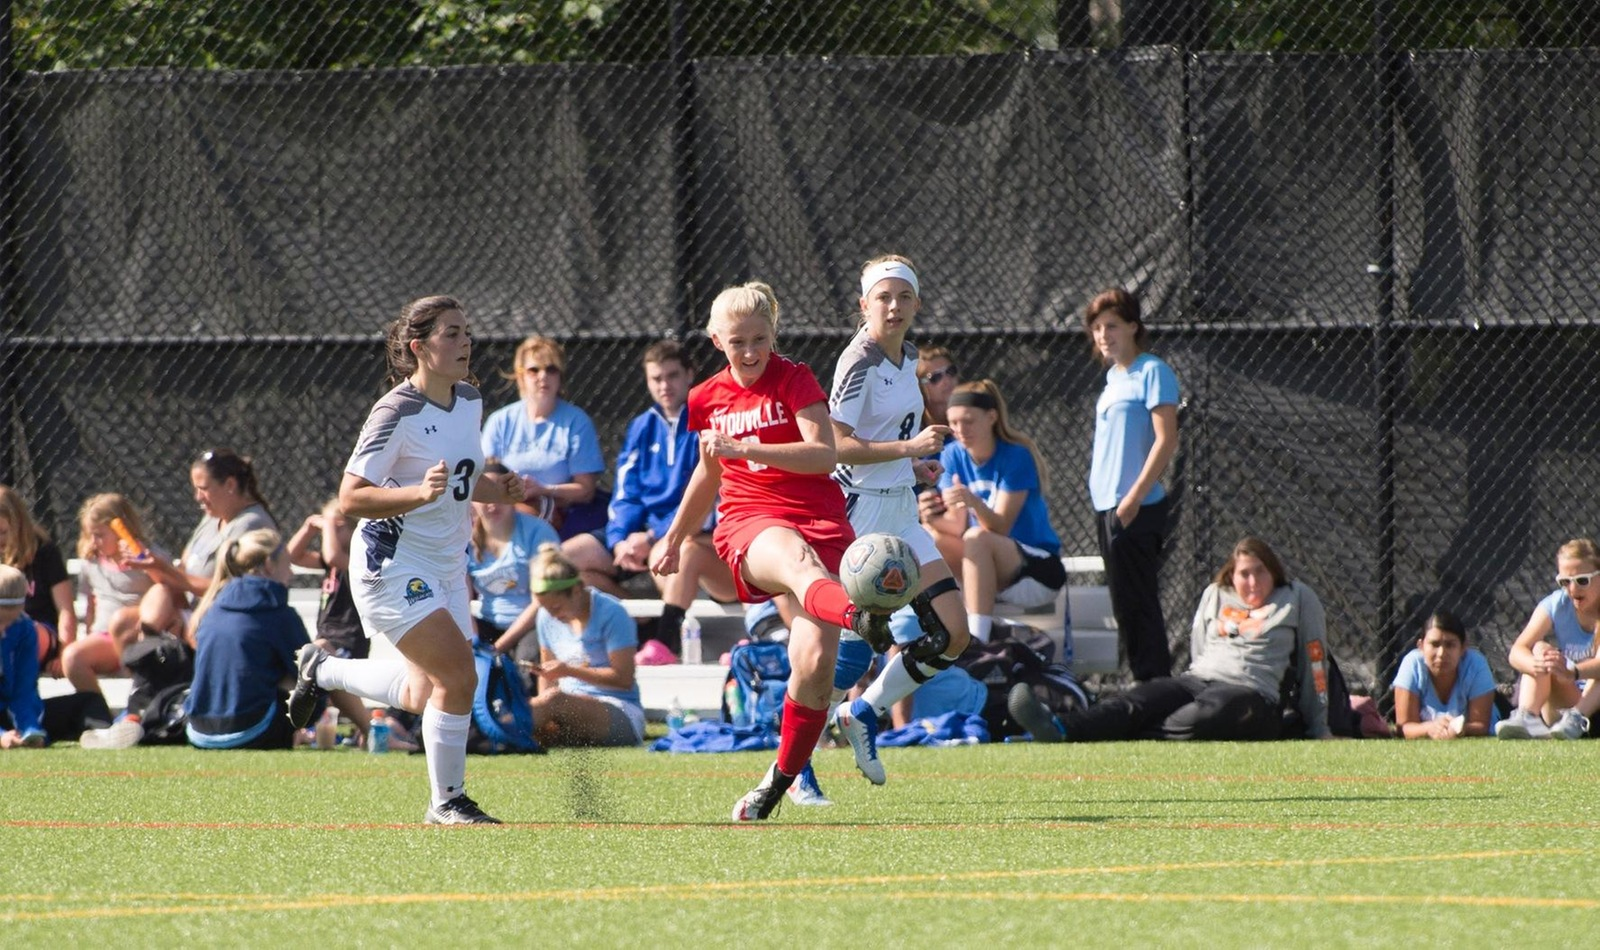 Magan Magee (pictured) scored the lone goal in the Spartans 1-0 victory over Penn State-Altoona